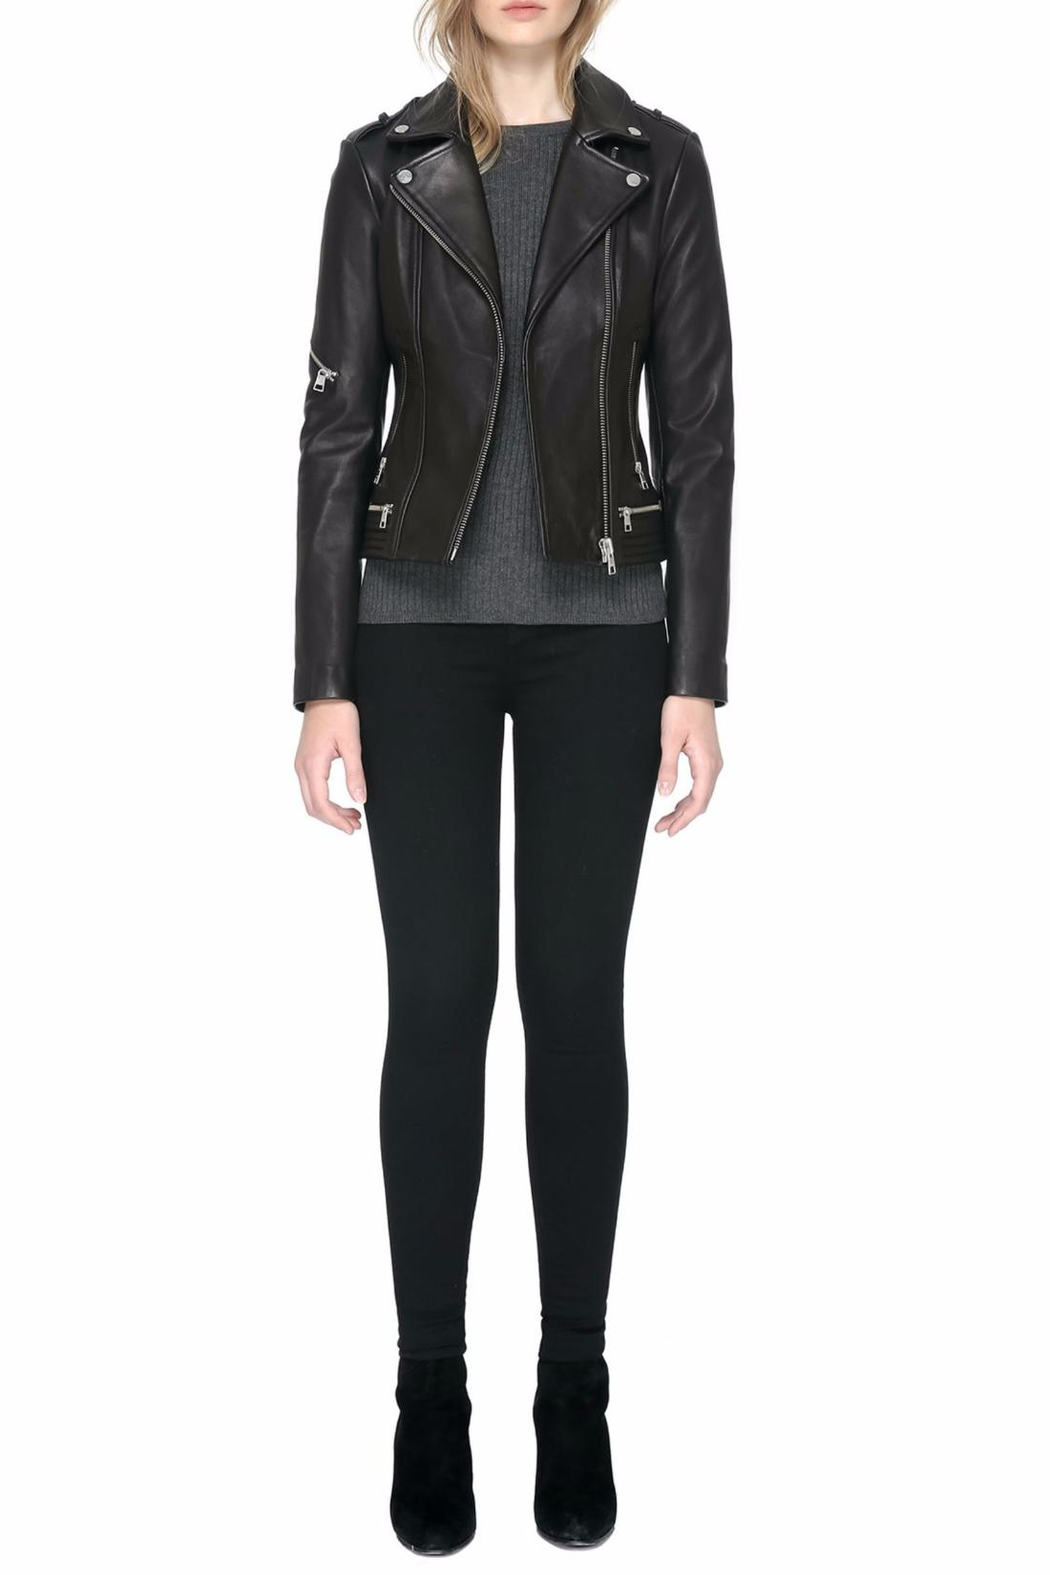 Soia & Kyo Jasmina Leather Jacket - Main Image